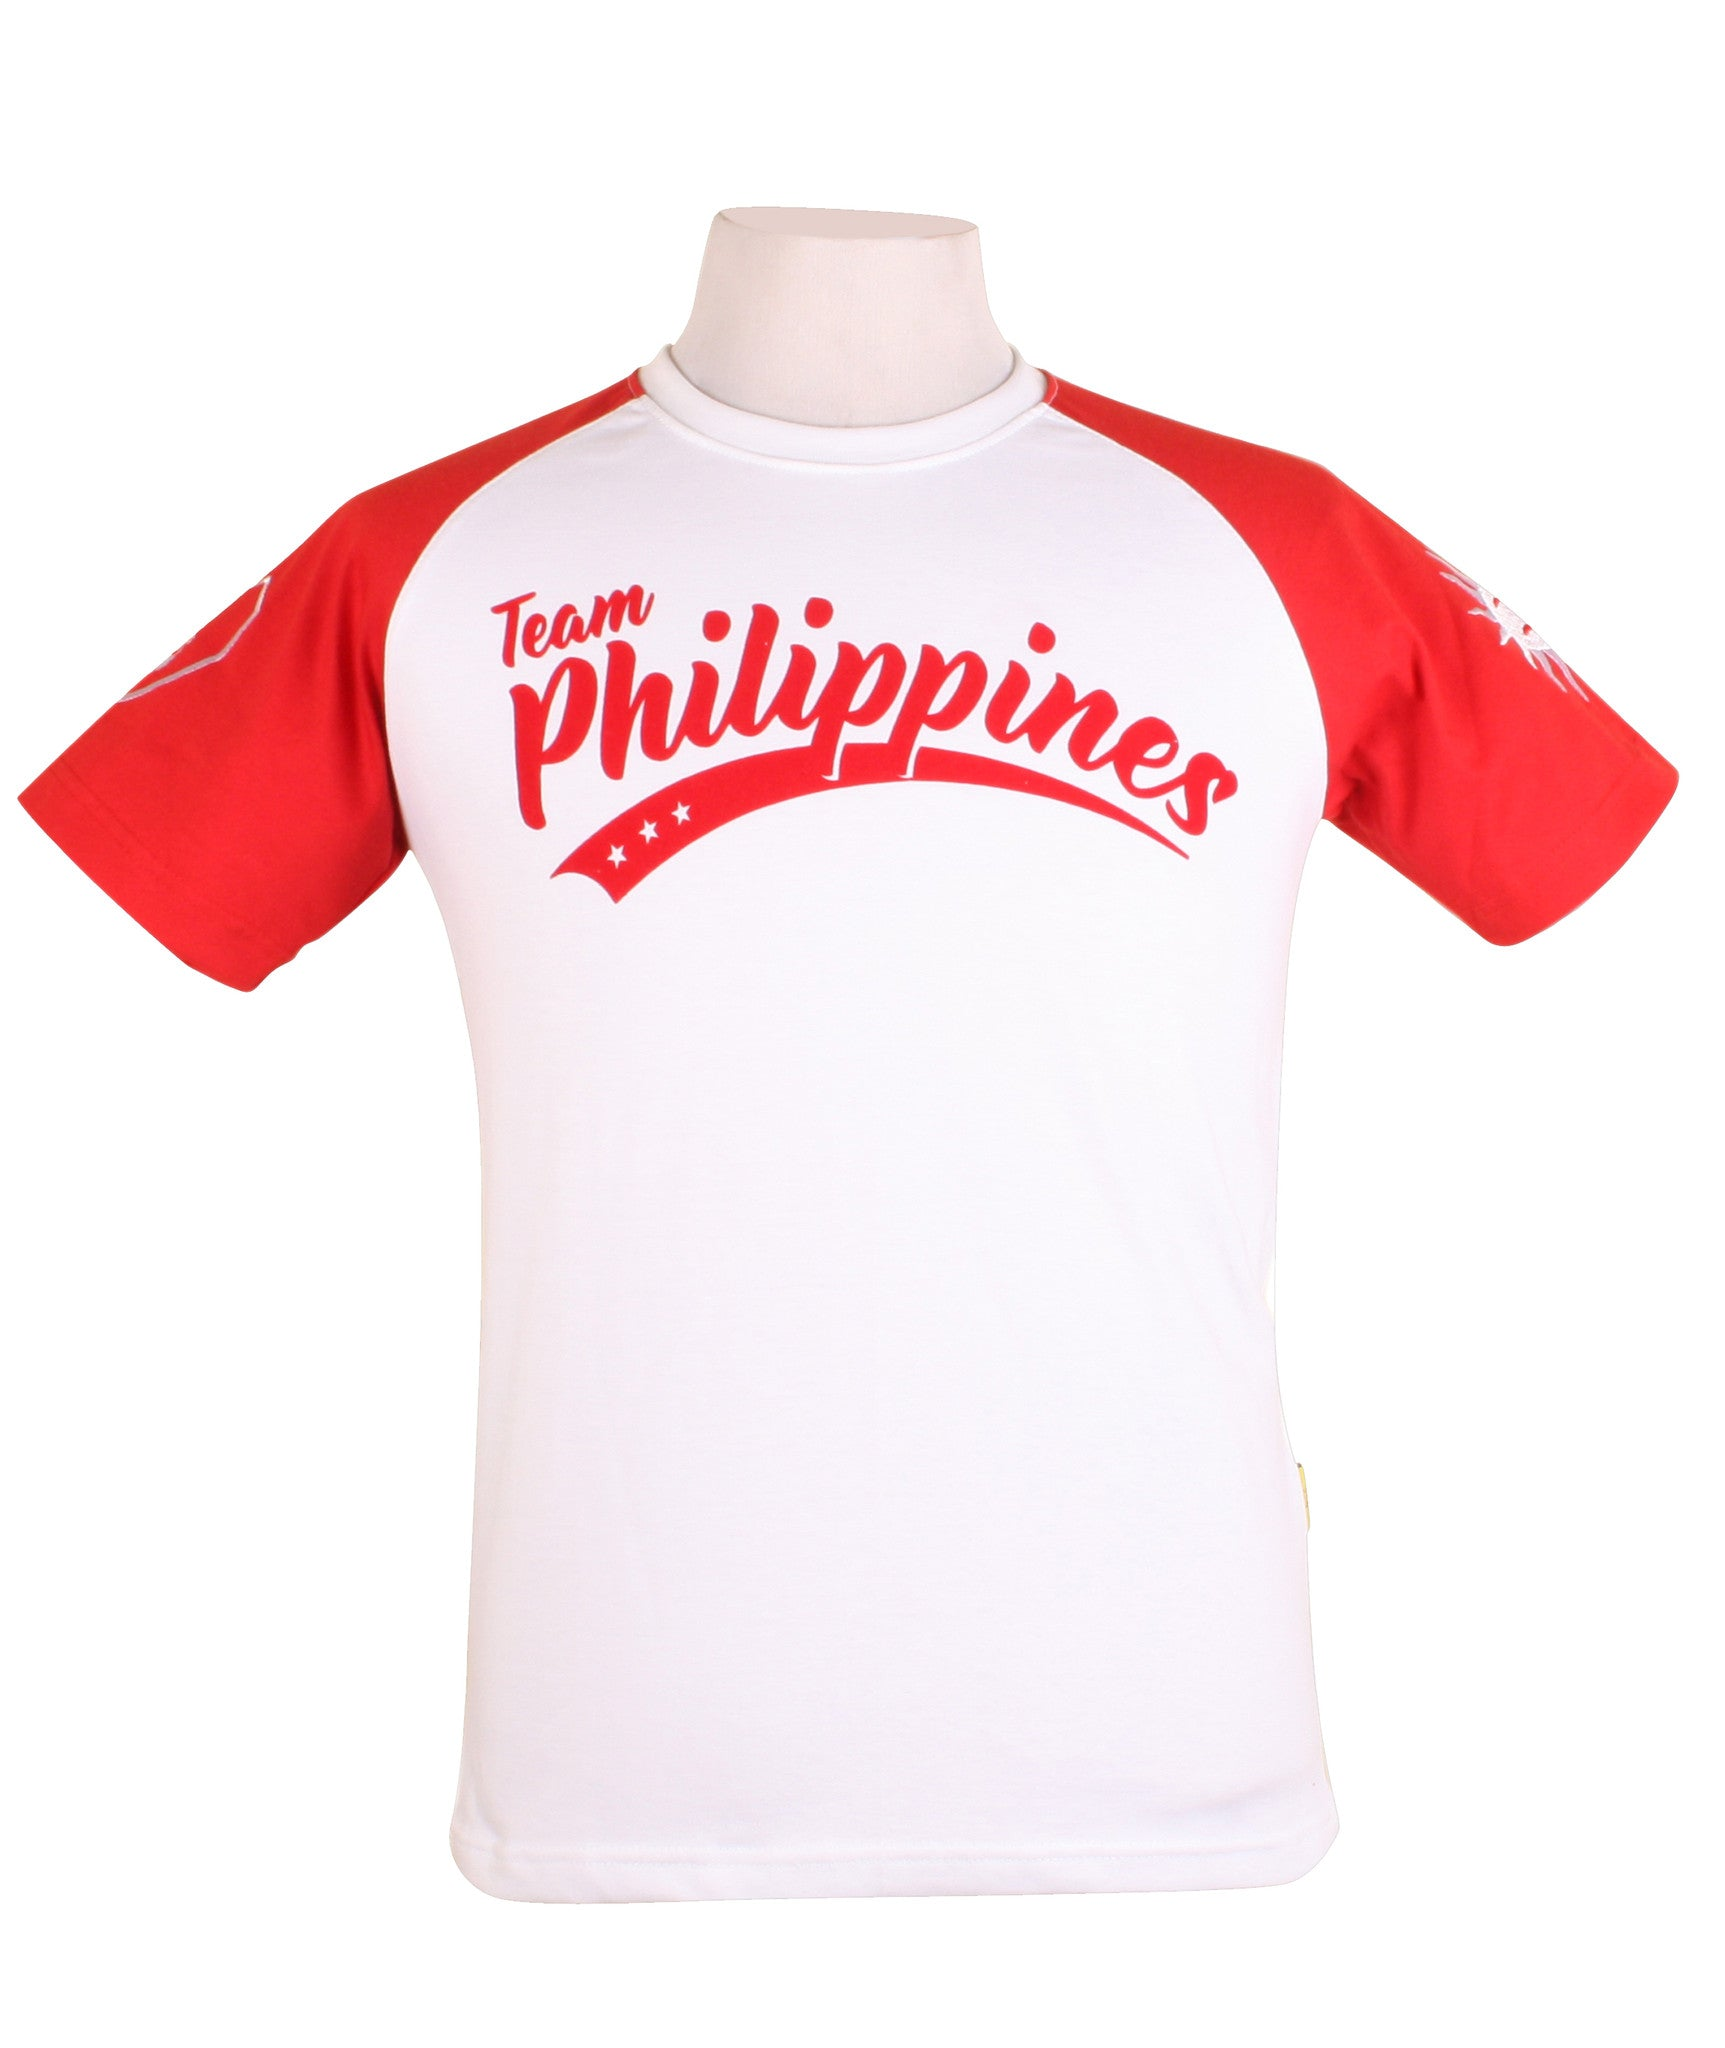 Team Philippines in white for Mens